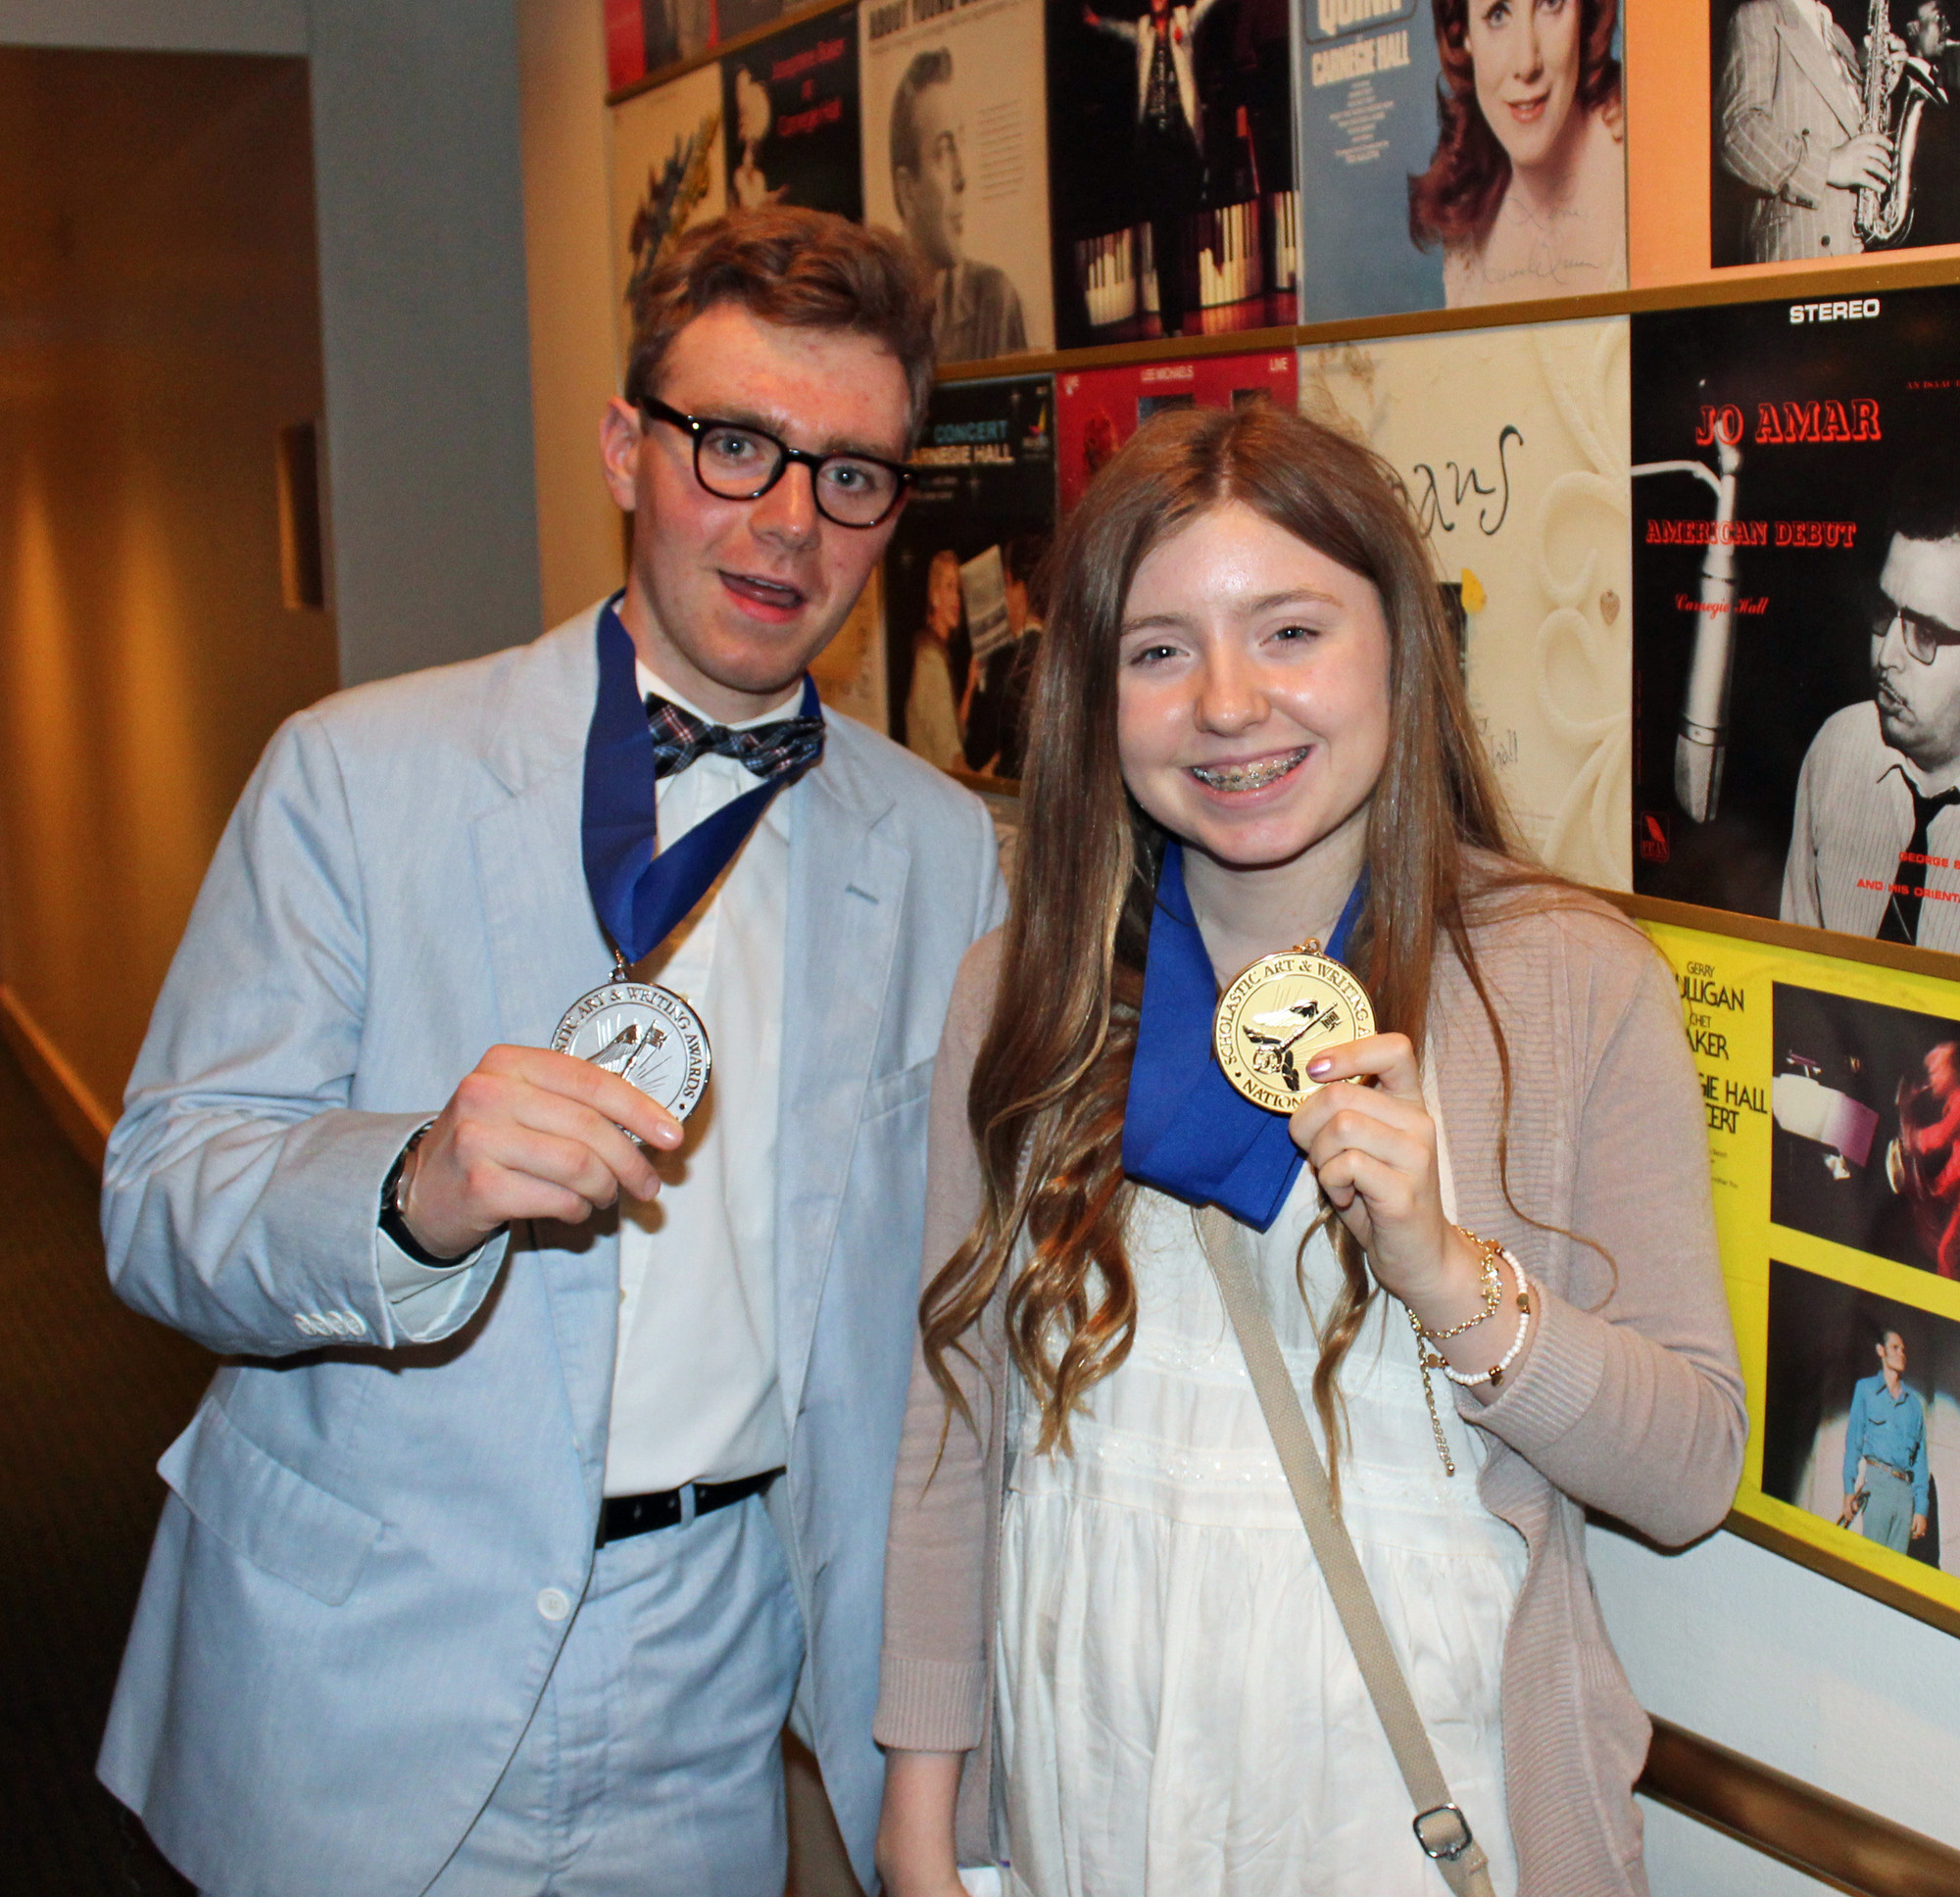 Long Beach High School students Max Tunney and Morgan Harrington were named national medalists in the 2014 Scholastic Art and Writing Awards competition. Harrington is from Island Park.